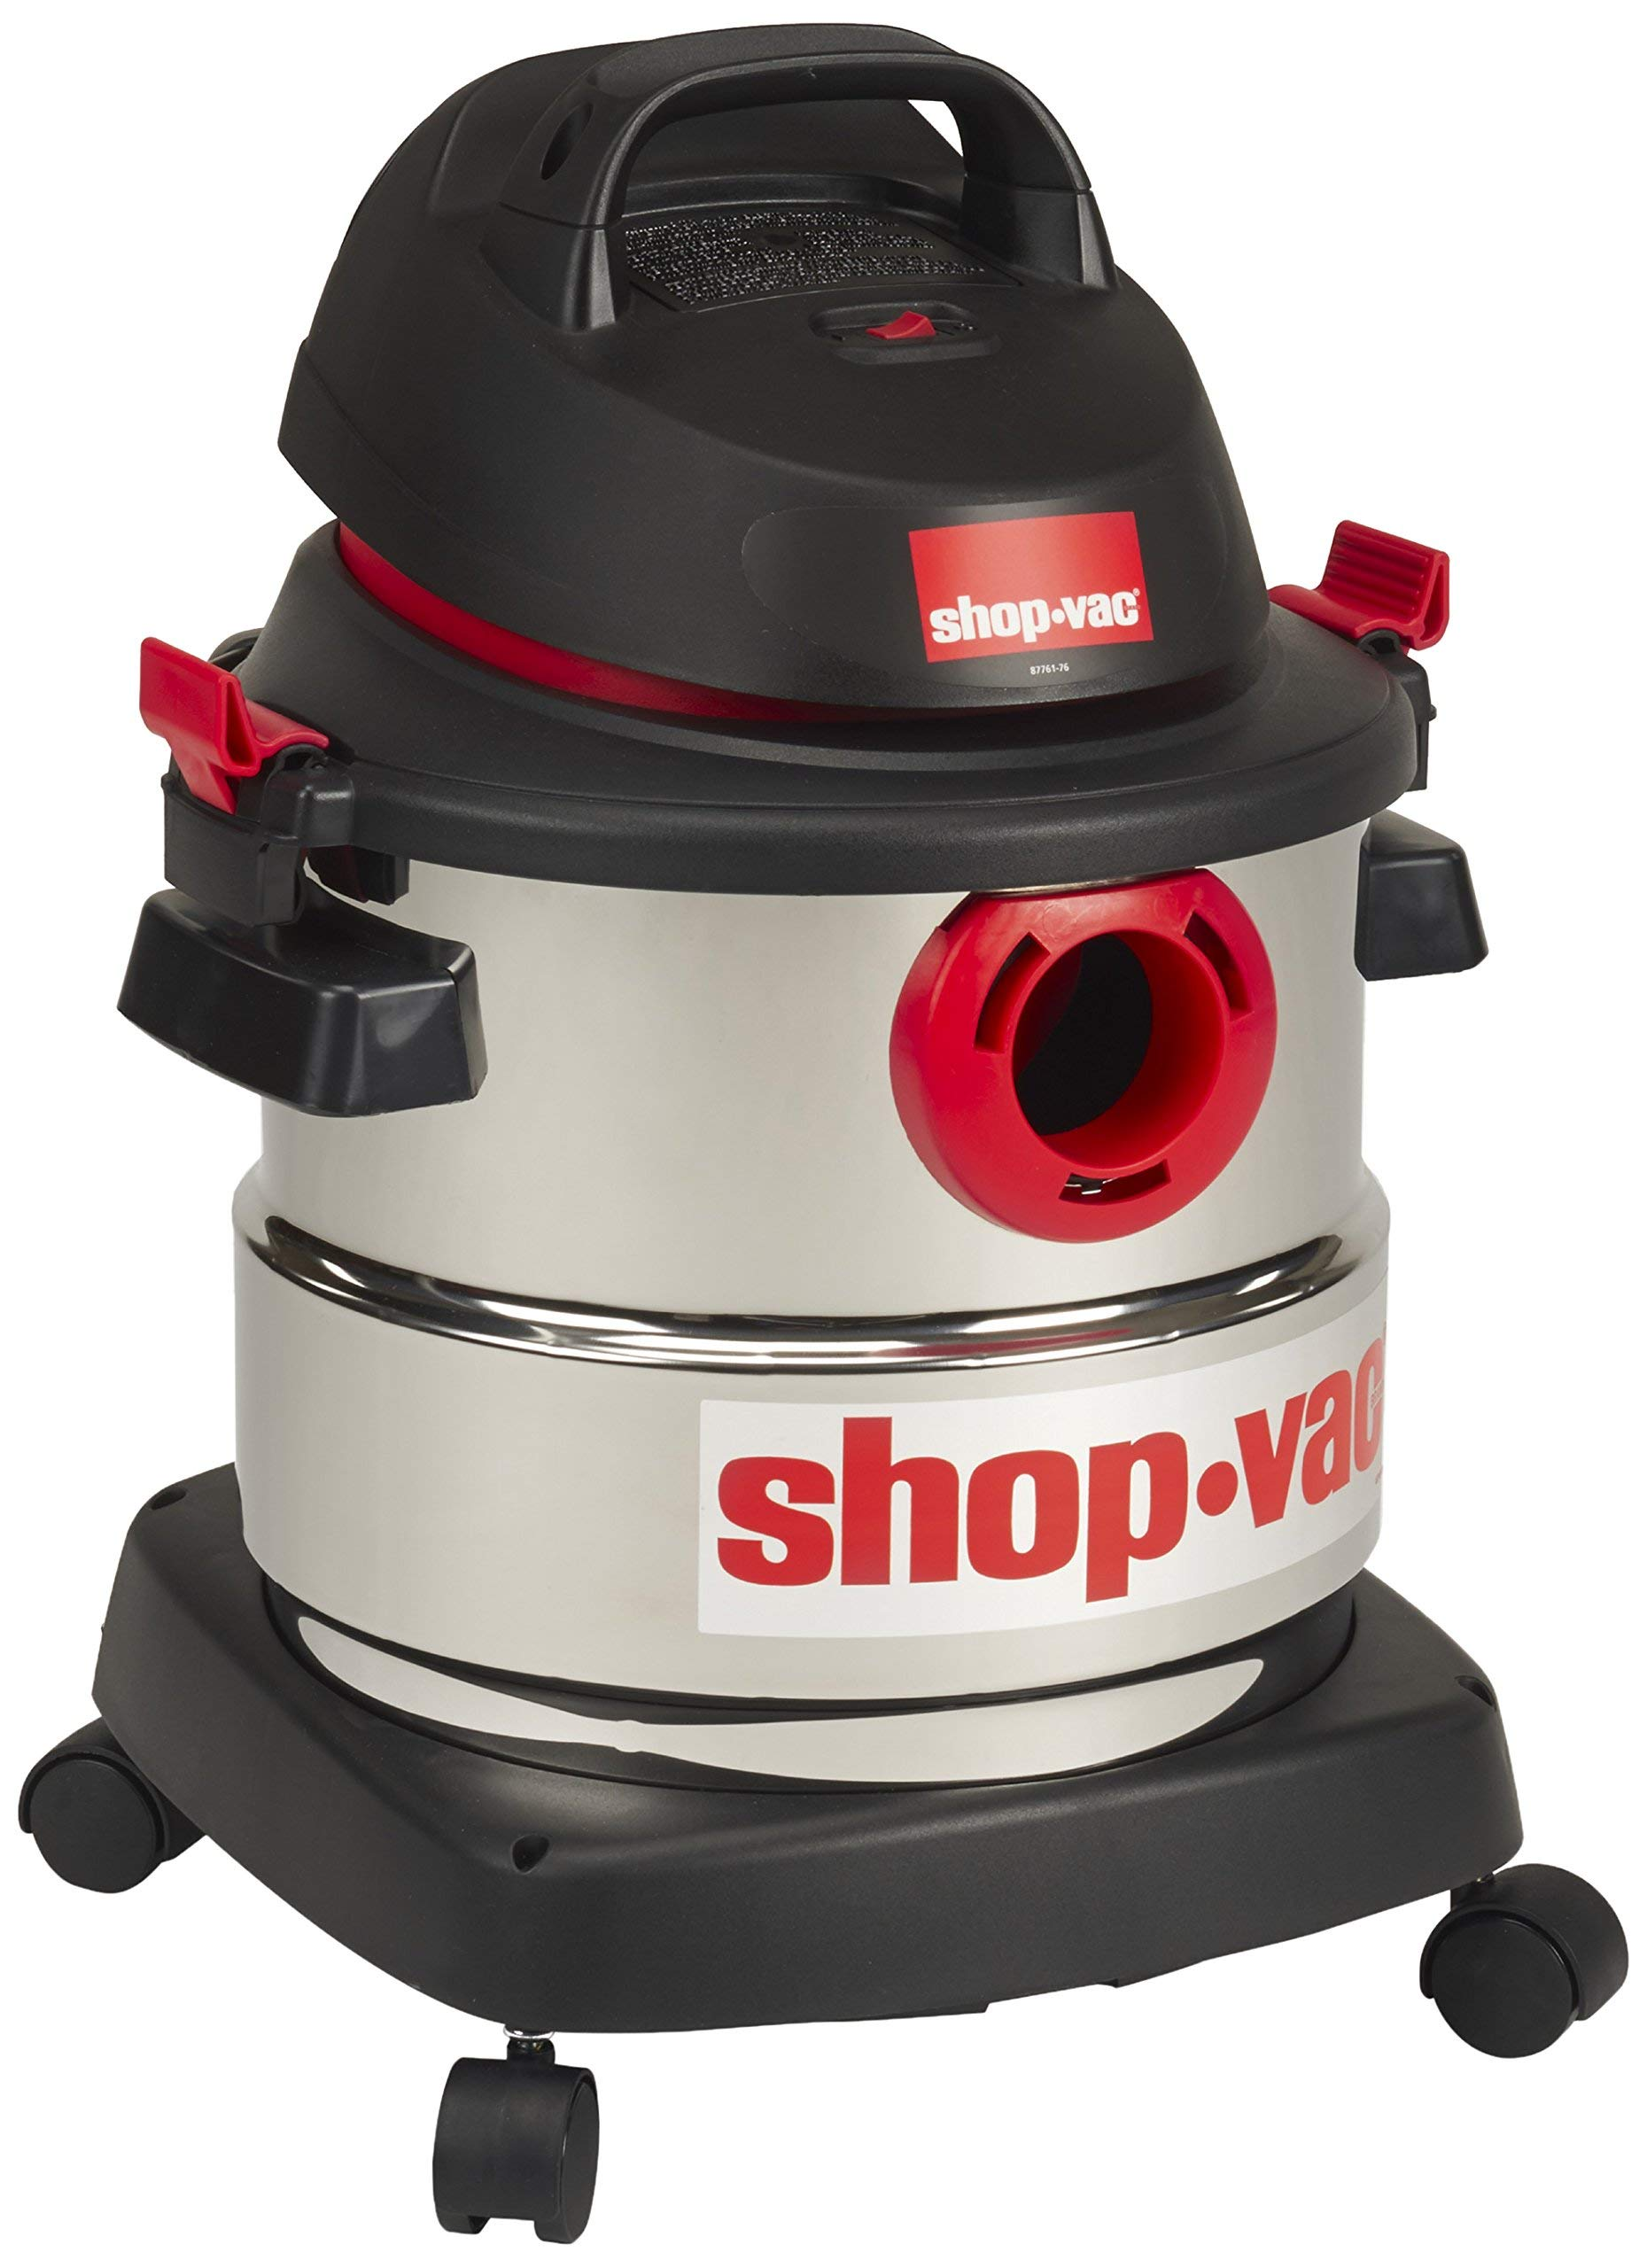 Shop-Vac 5989300 5-Gallon 4.5 Peak HP Stainless Steel Wet Dry Vacuum (Renewed)